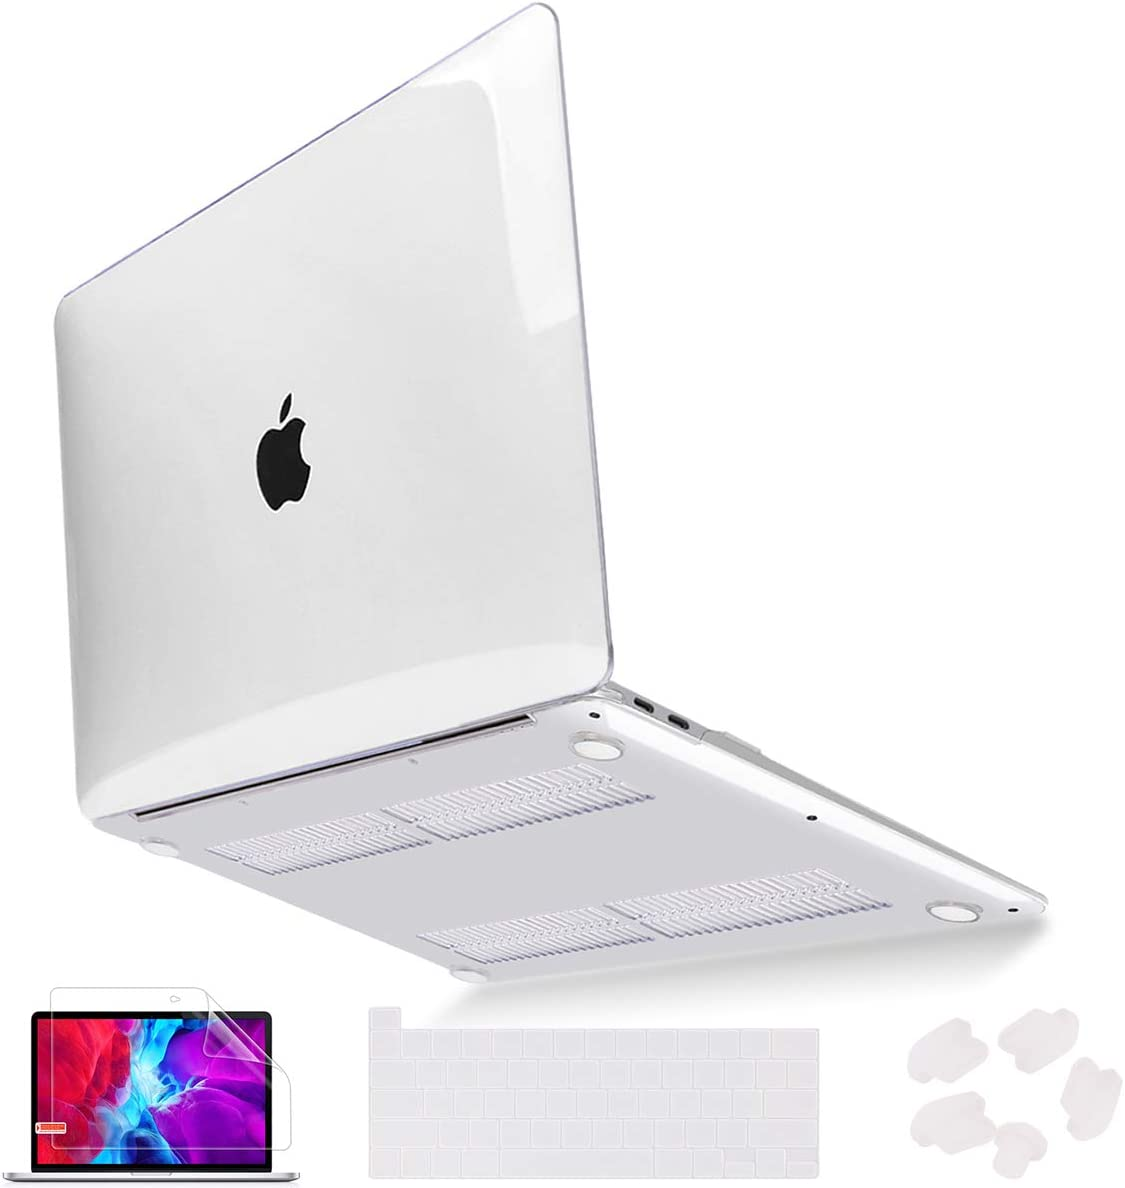 Mektron for MacBook Pro 13 Case 2020 A2289 A2251, Crystal Hard Shell Case for Newest MacBook Pro 13 inch with Touch Bar & Touch ID w/Keyboard Cover & Screen Protector, Clear